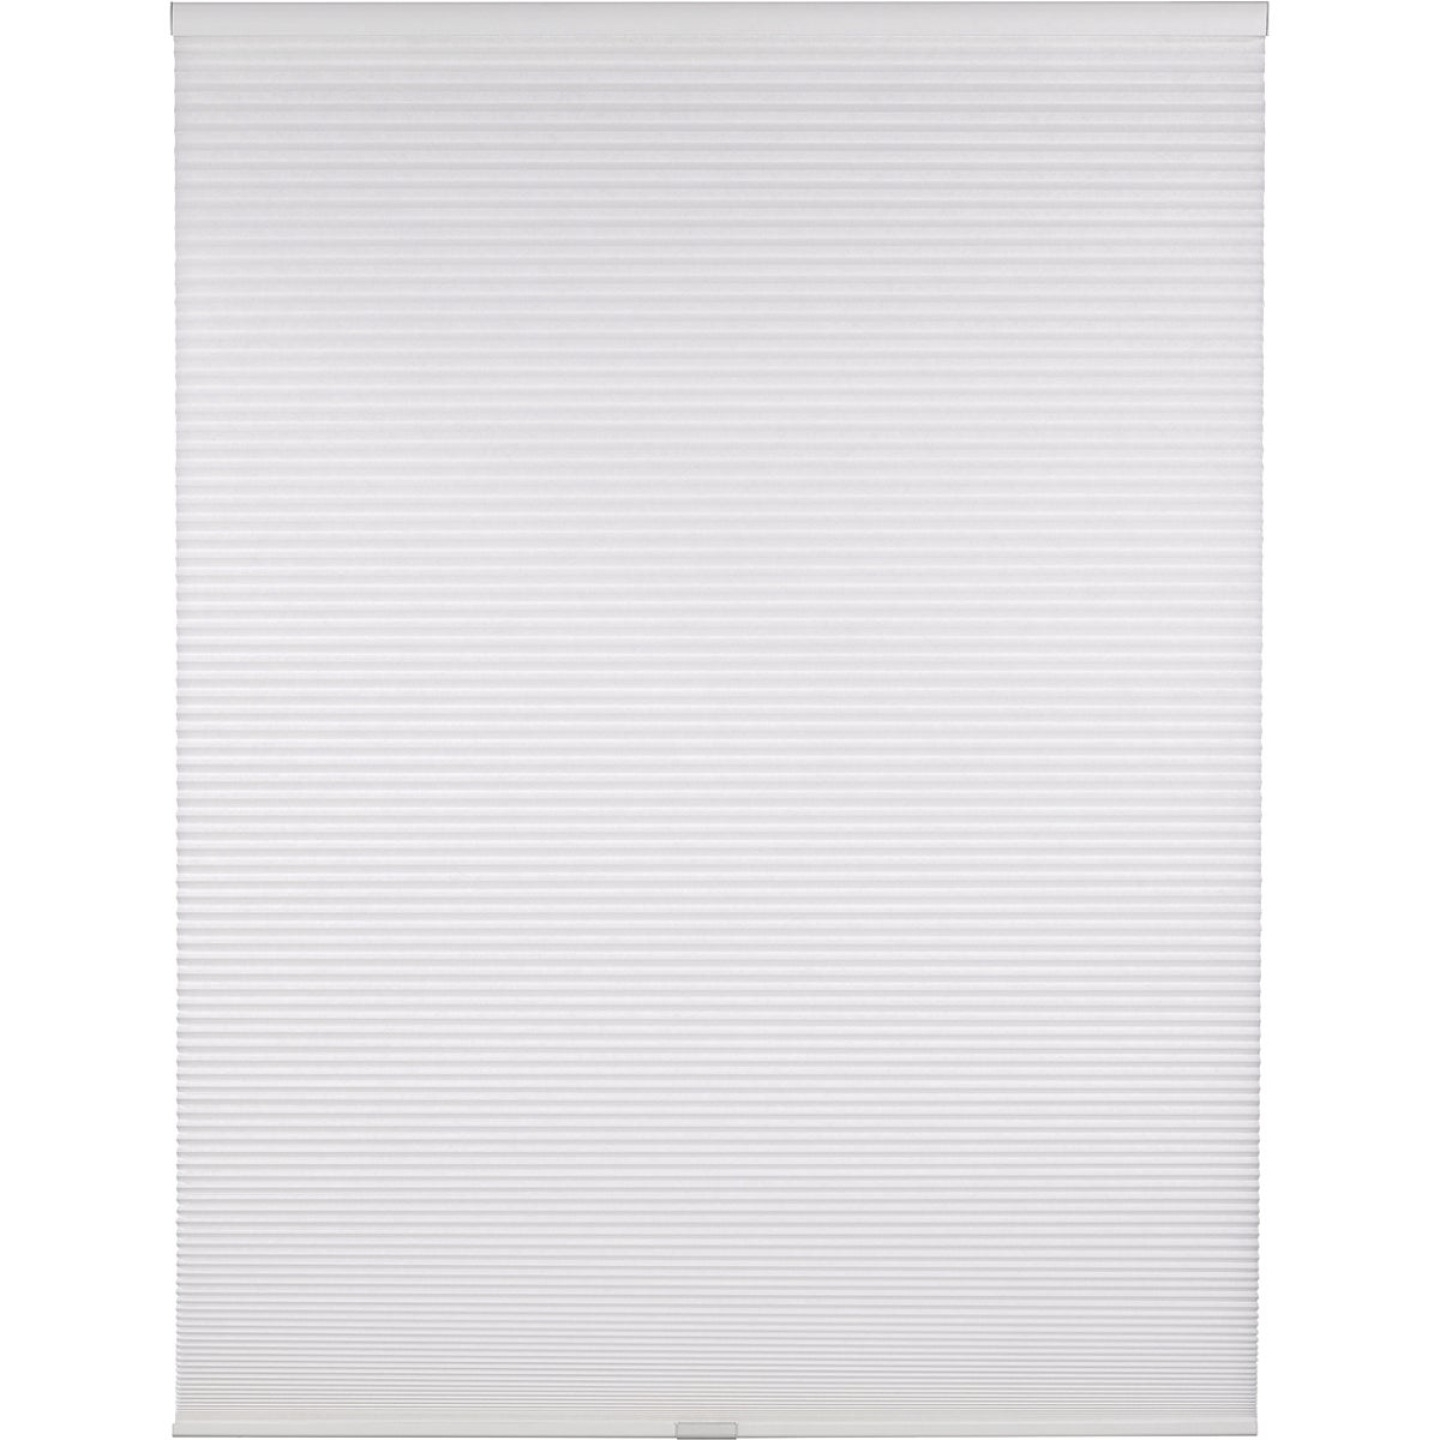 Home Impressions 1 In. Light Filtering Cellular White 72 In. x 72 In. Cordless Shade Image 1